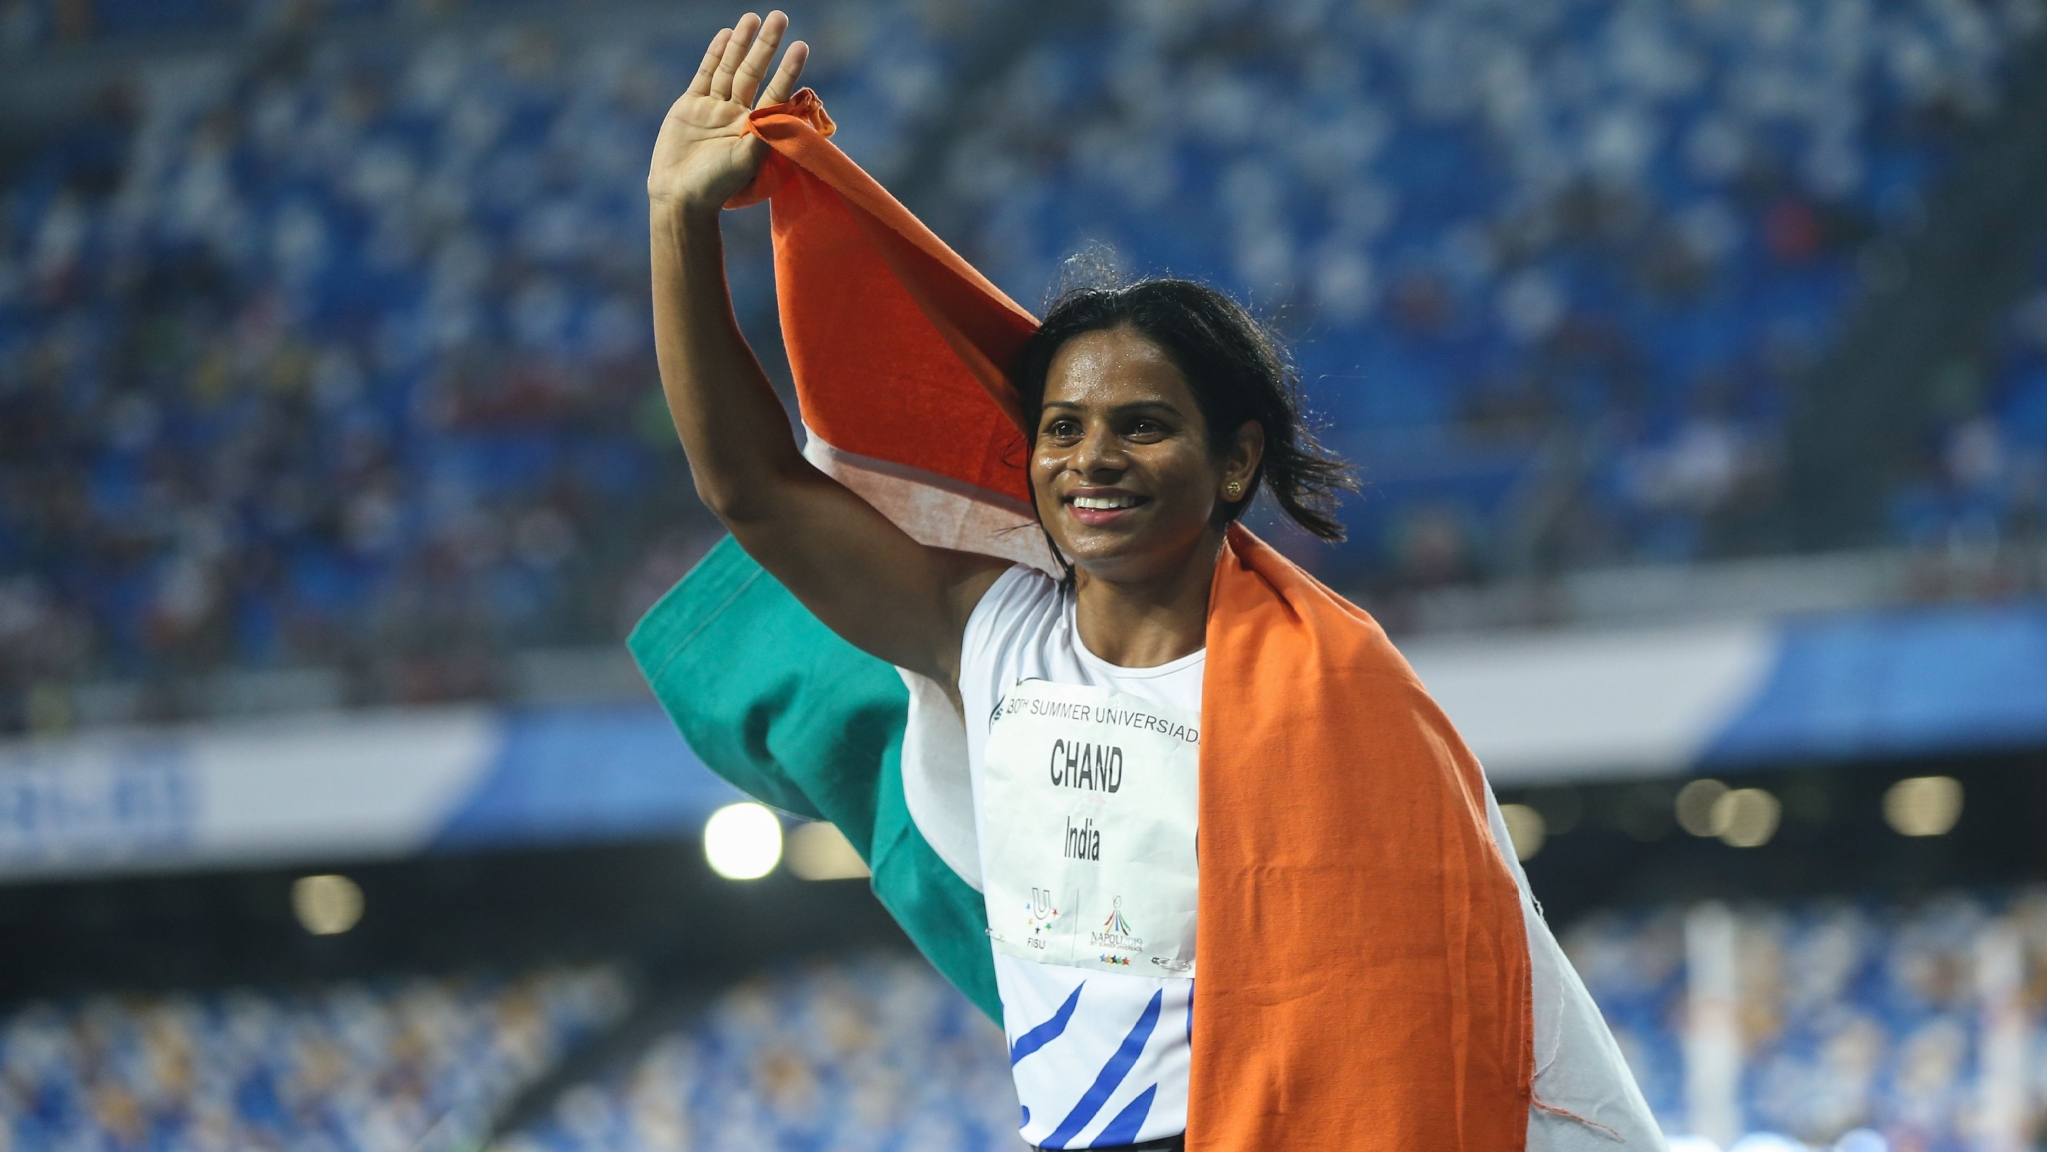 Want to Tell My Critics that I am Not Finished Yet: Dutee Chand